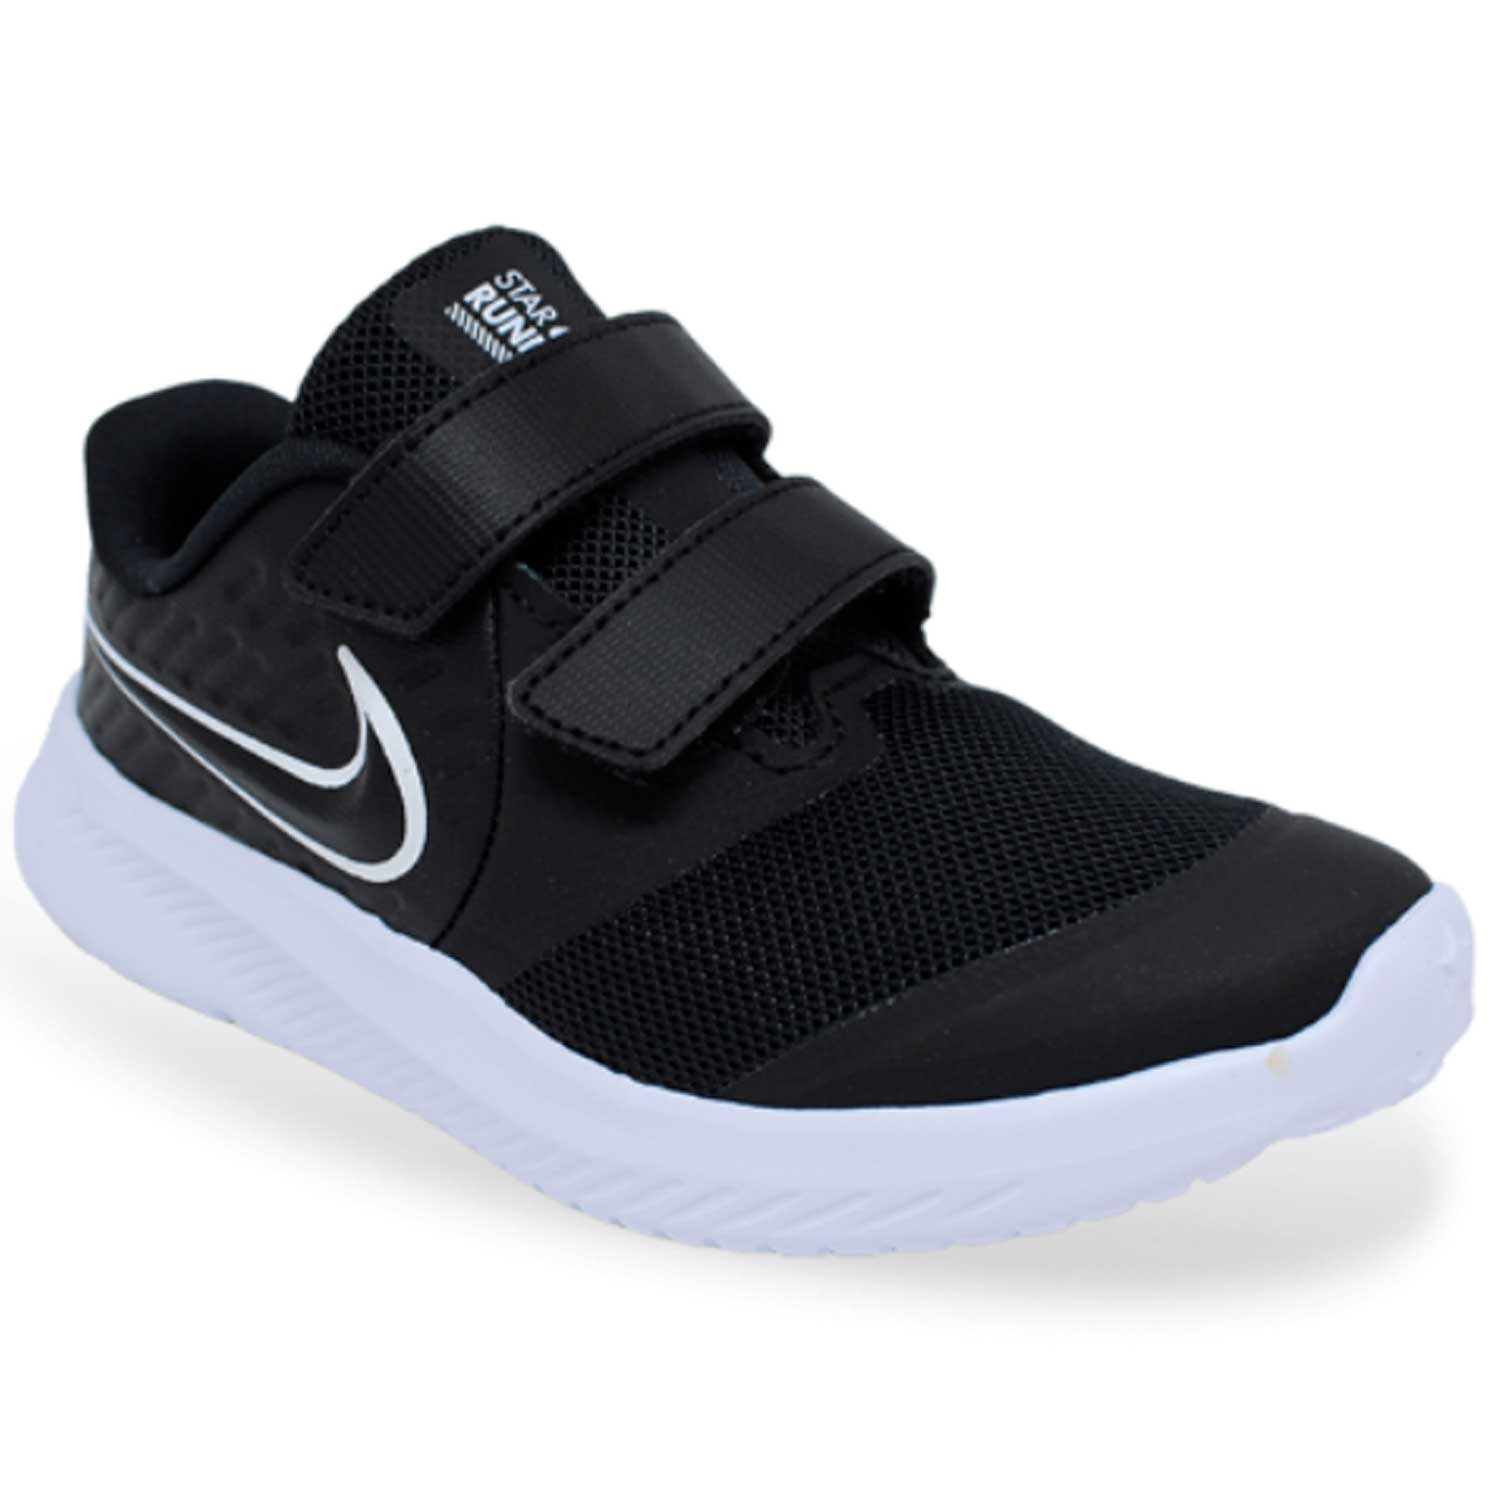 TÊNIS INFANTIL STAR RUNNER 2 T NIKE REF:AT1803001 21/26